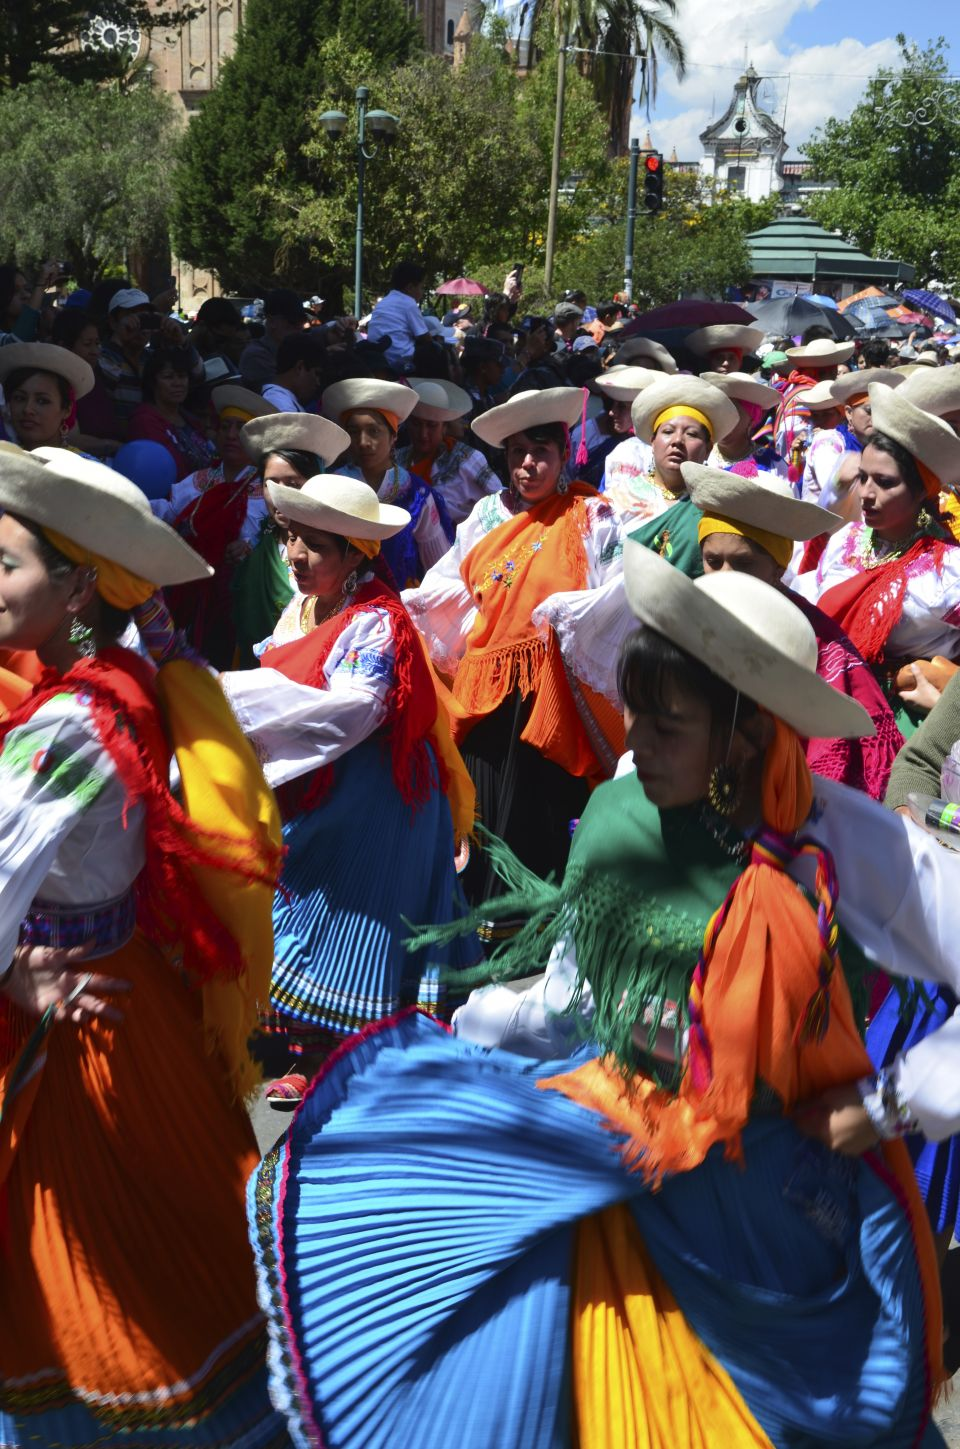 c55-Dancing in the streets Cuenca Ecuador.jpg